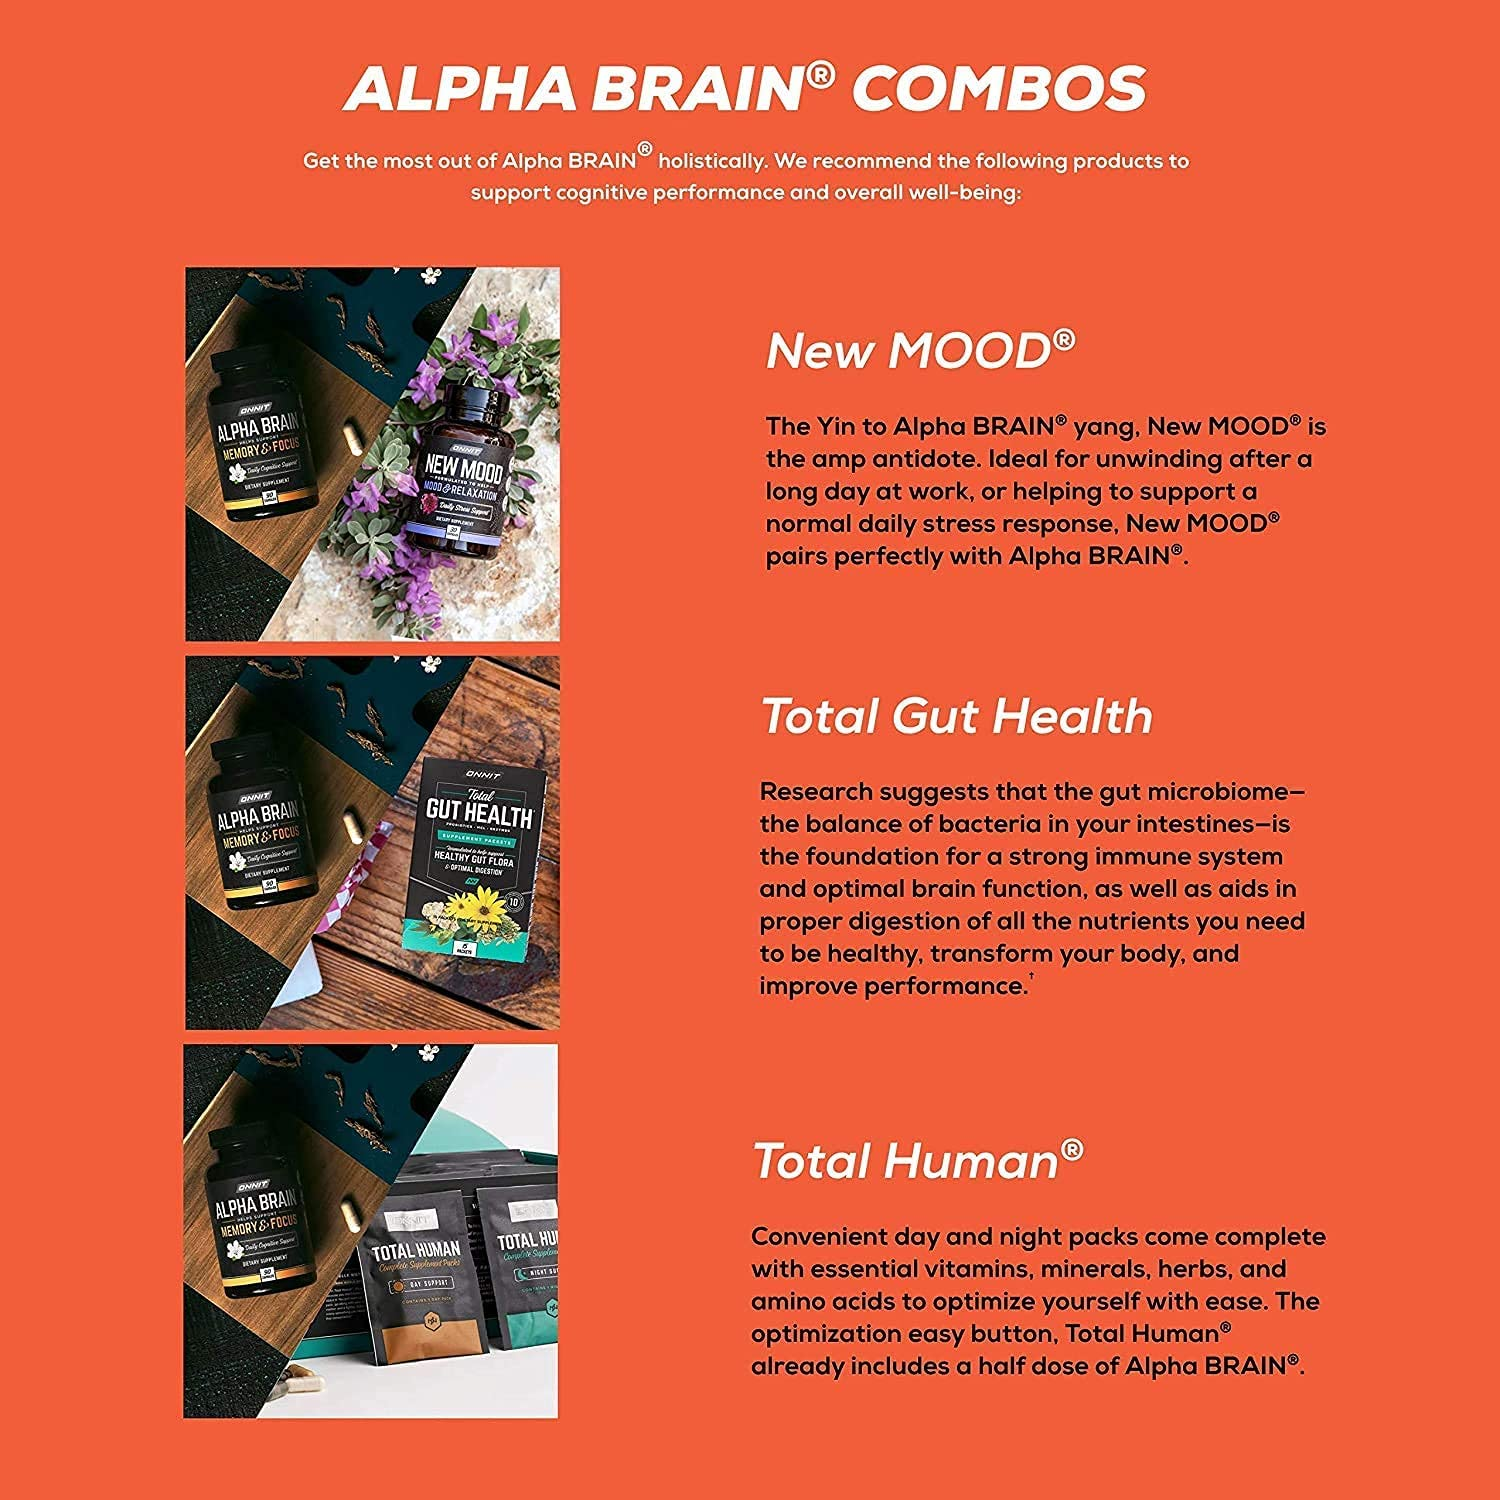 ONNIT Alpha Brain (30ct) - Over 1 Million Bottles Sold - Nootropic Brain Booster Supplement - Promotes Focus, Concentration & Memory - Alpha GPC, L Theanine, Bacopa Monnieri, Huperzine A, Vitamin B6